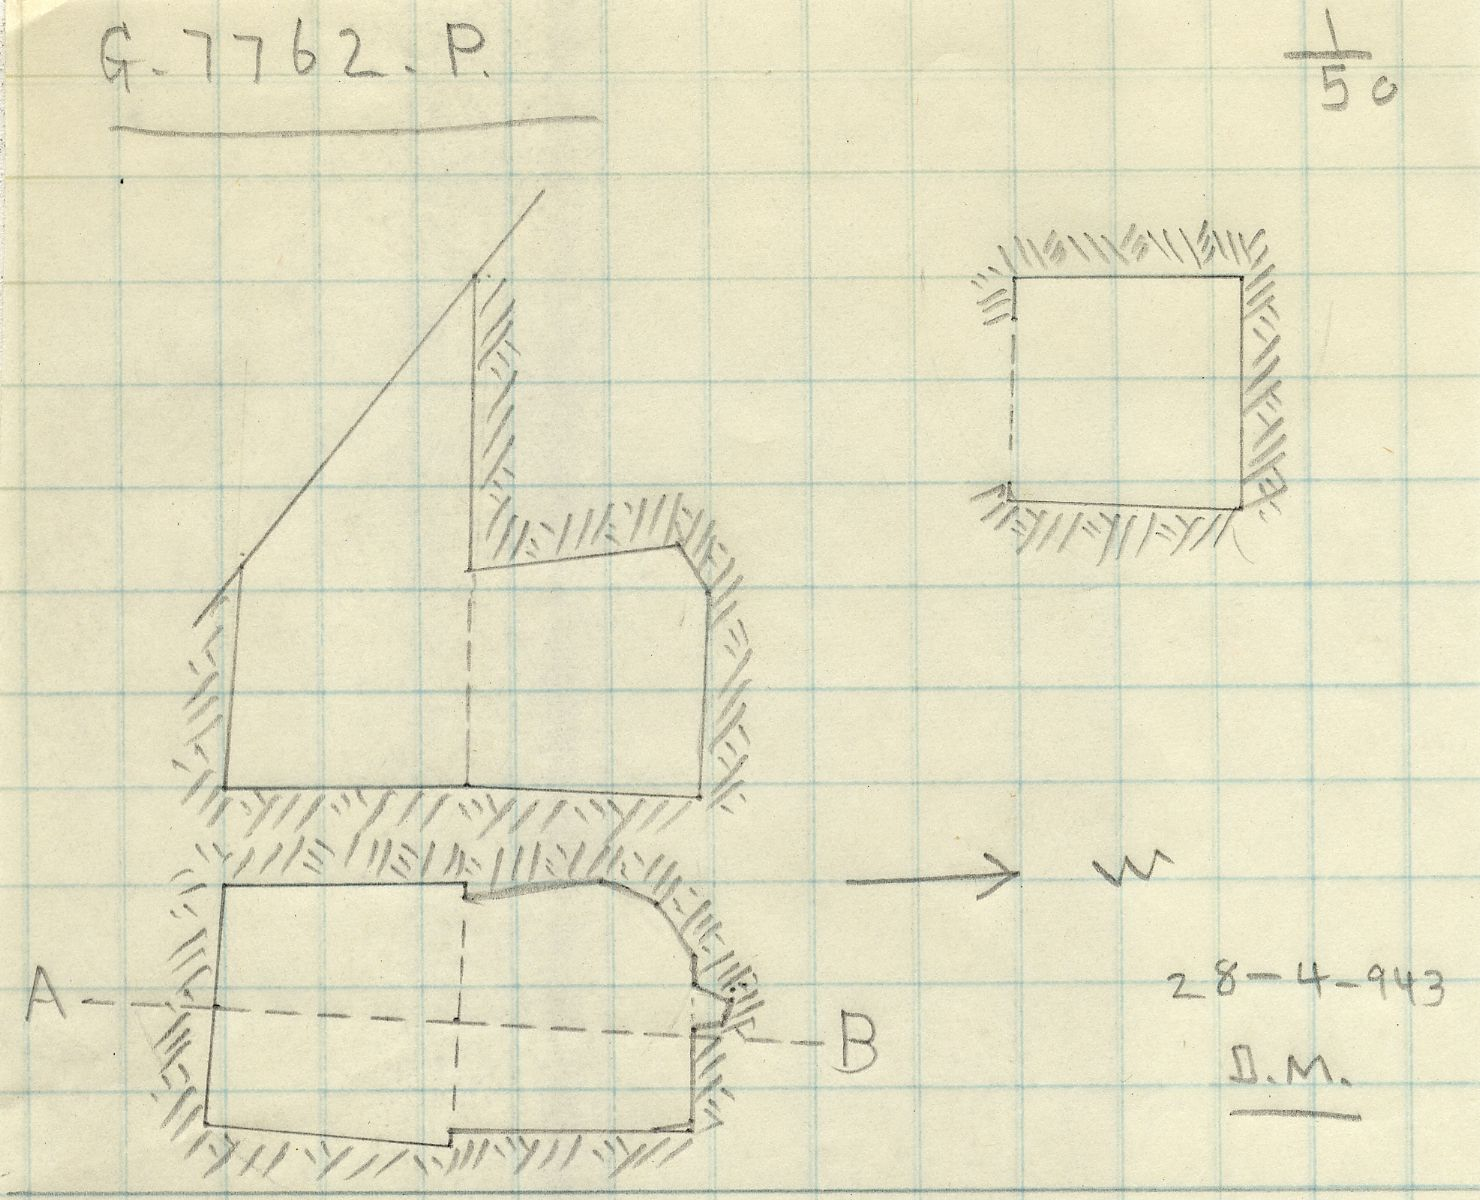 Maps and plans: G 7762a, Shaft P